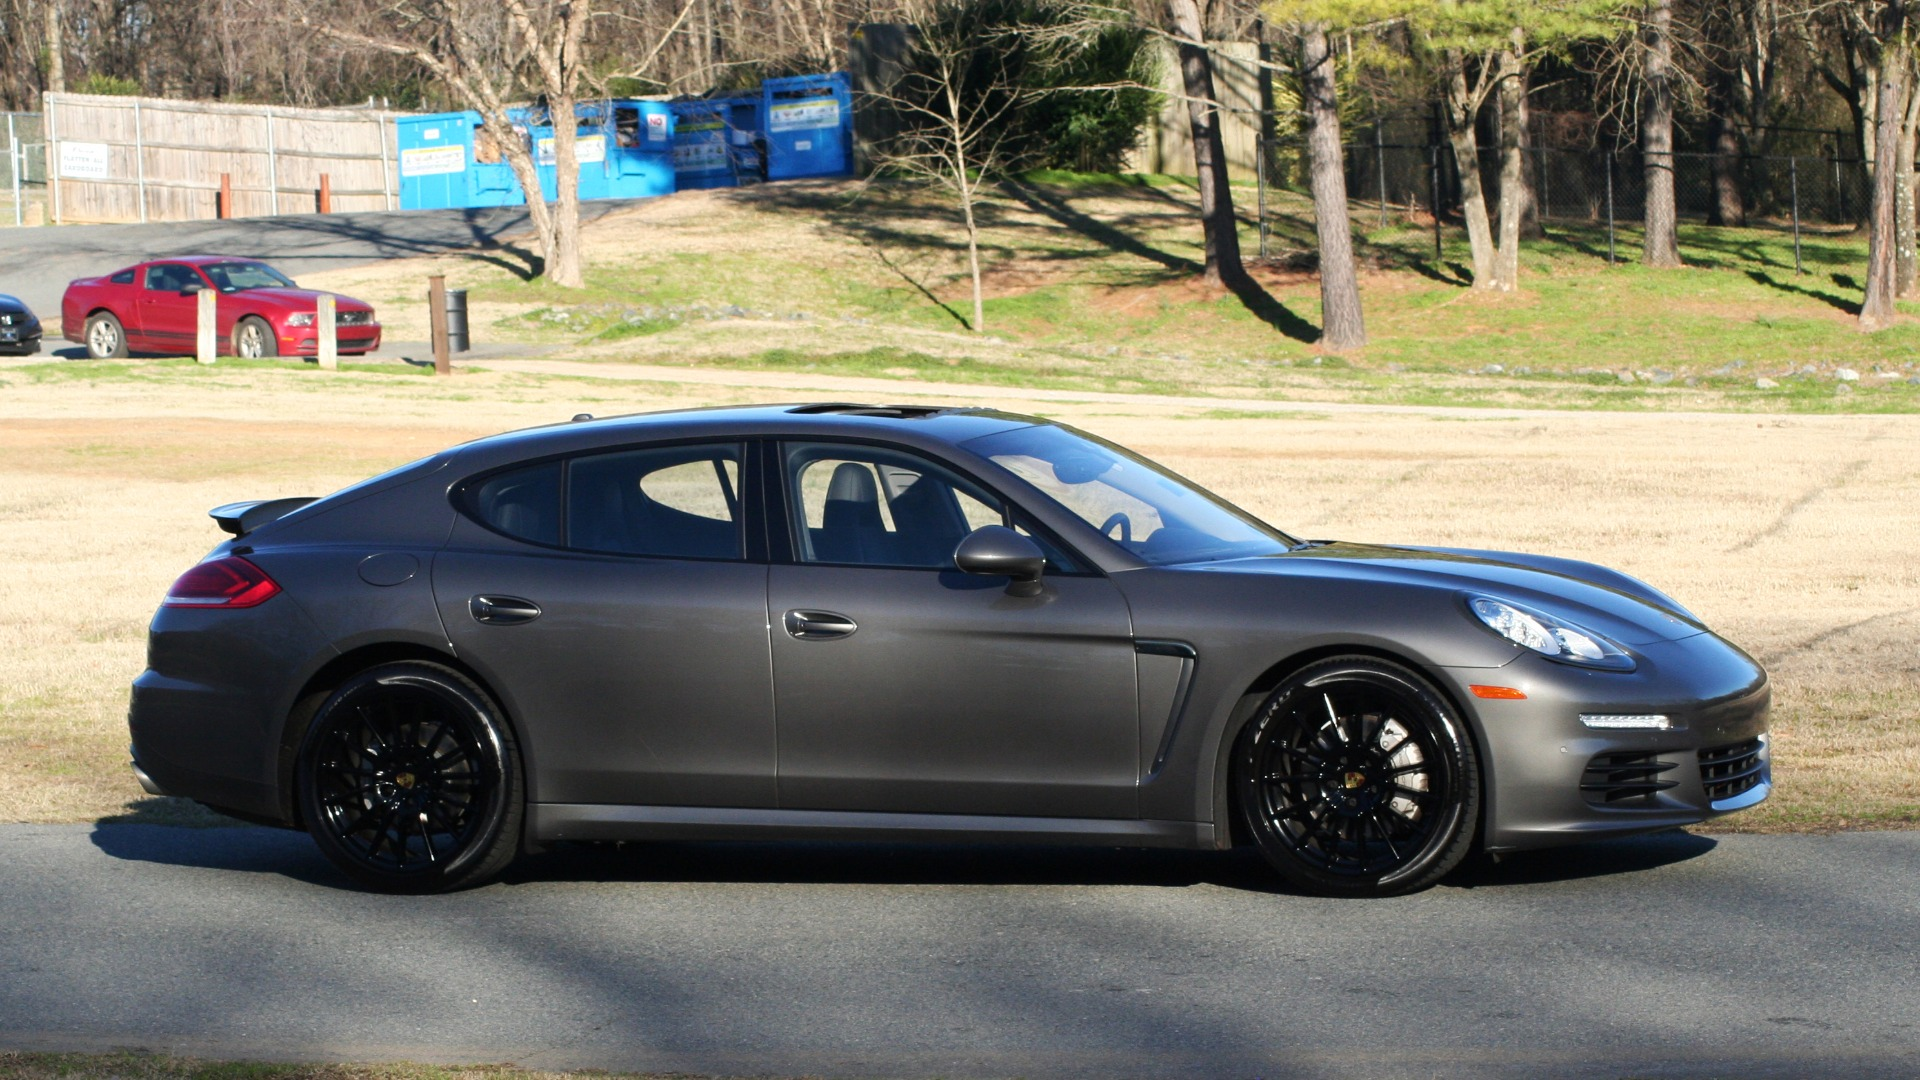 Used 2016 Porsche PANAMERA S / TURBO V6 / PDK / NAV / BOSE / SNRF / LDW / REARVIEW for sale Sold at Formula Imports in Charlotte NC 28227 16